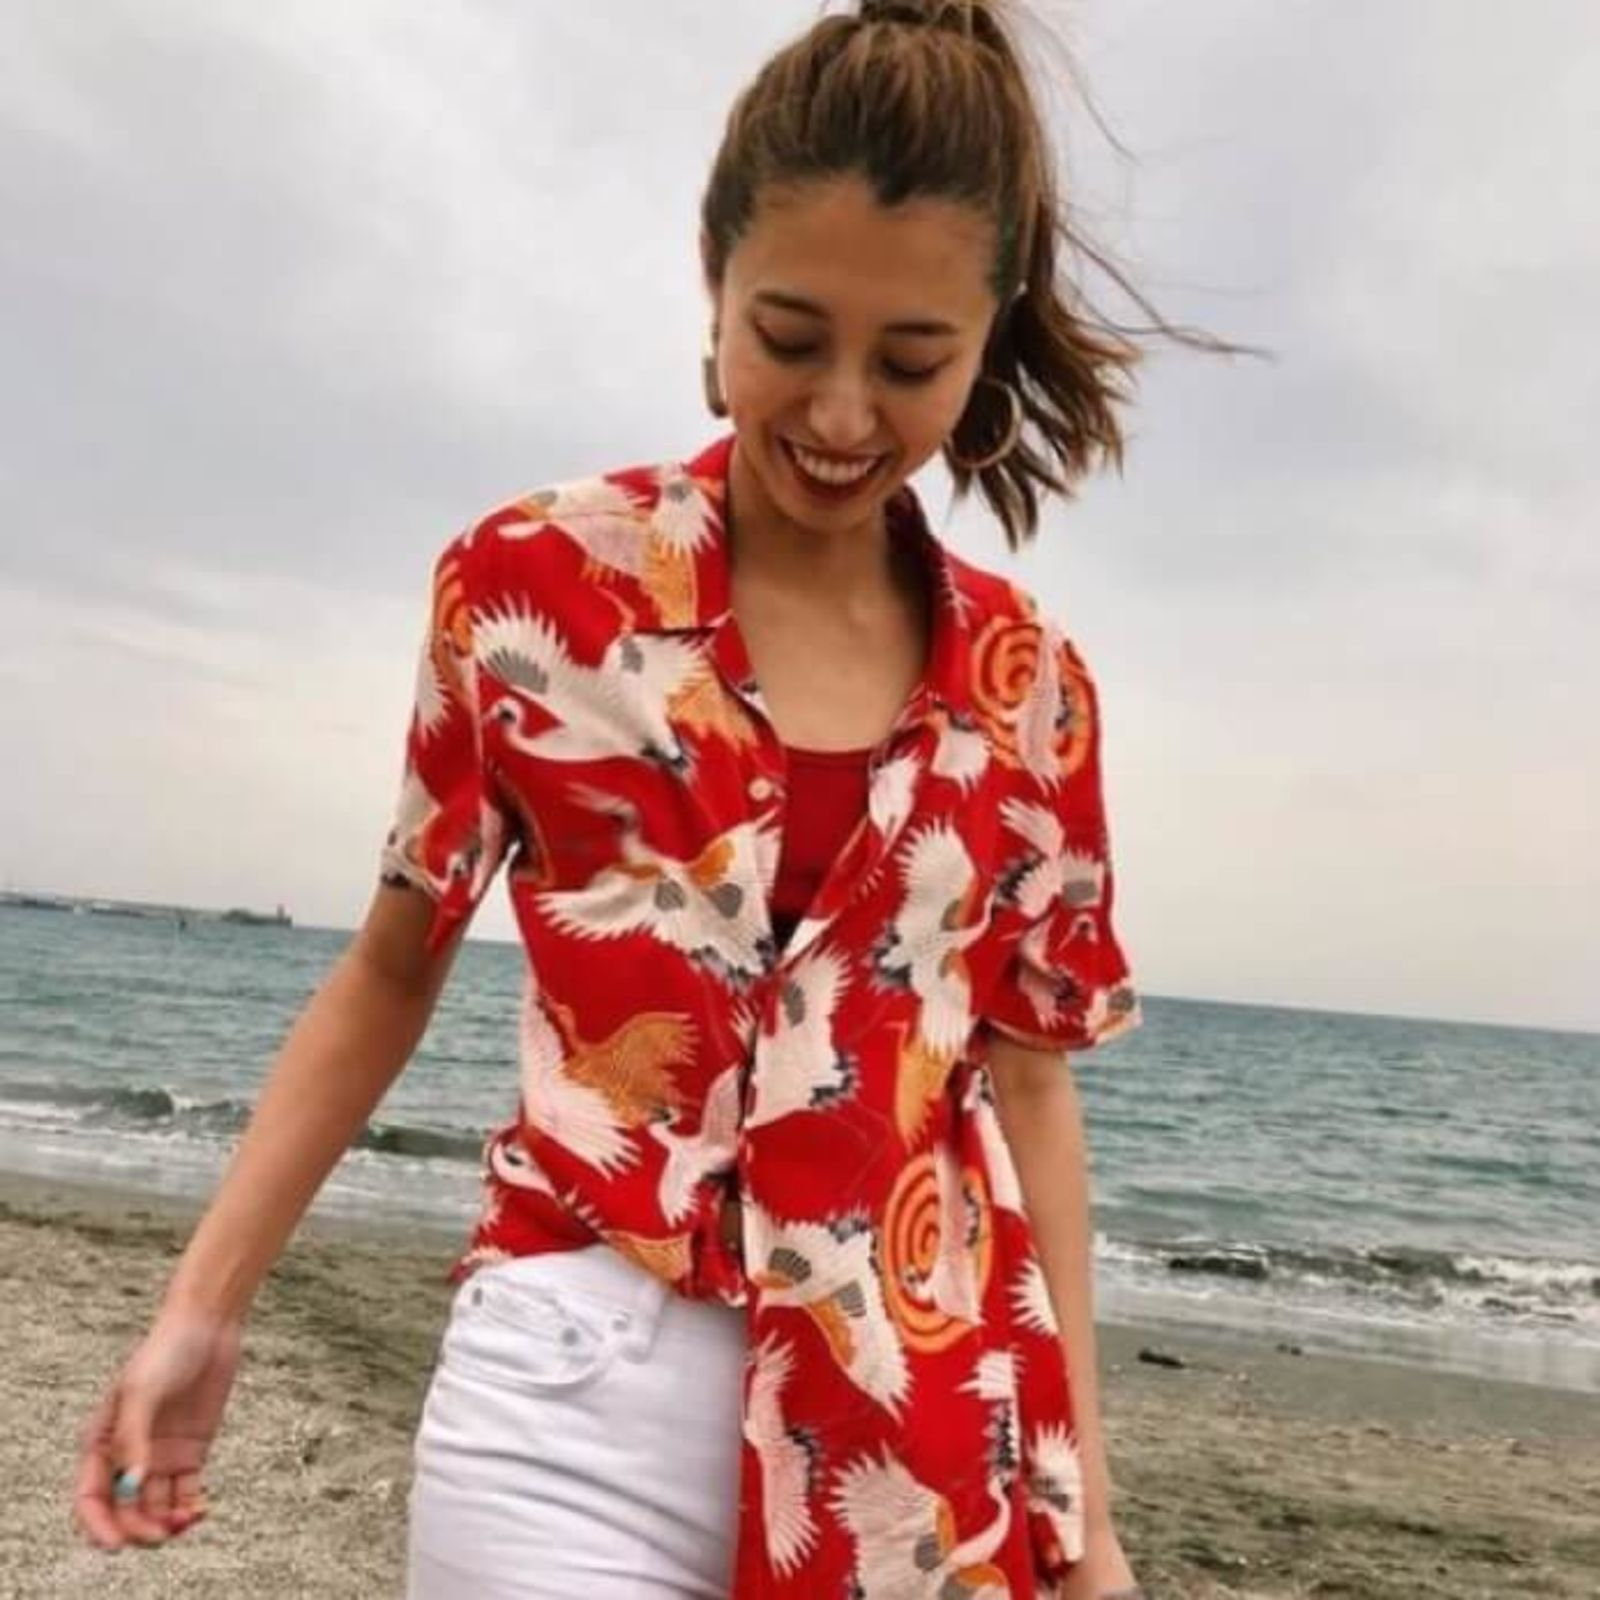 Image of a woman wearing a red Hawaiian printed shirt with white jeans.